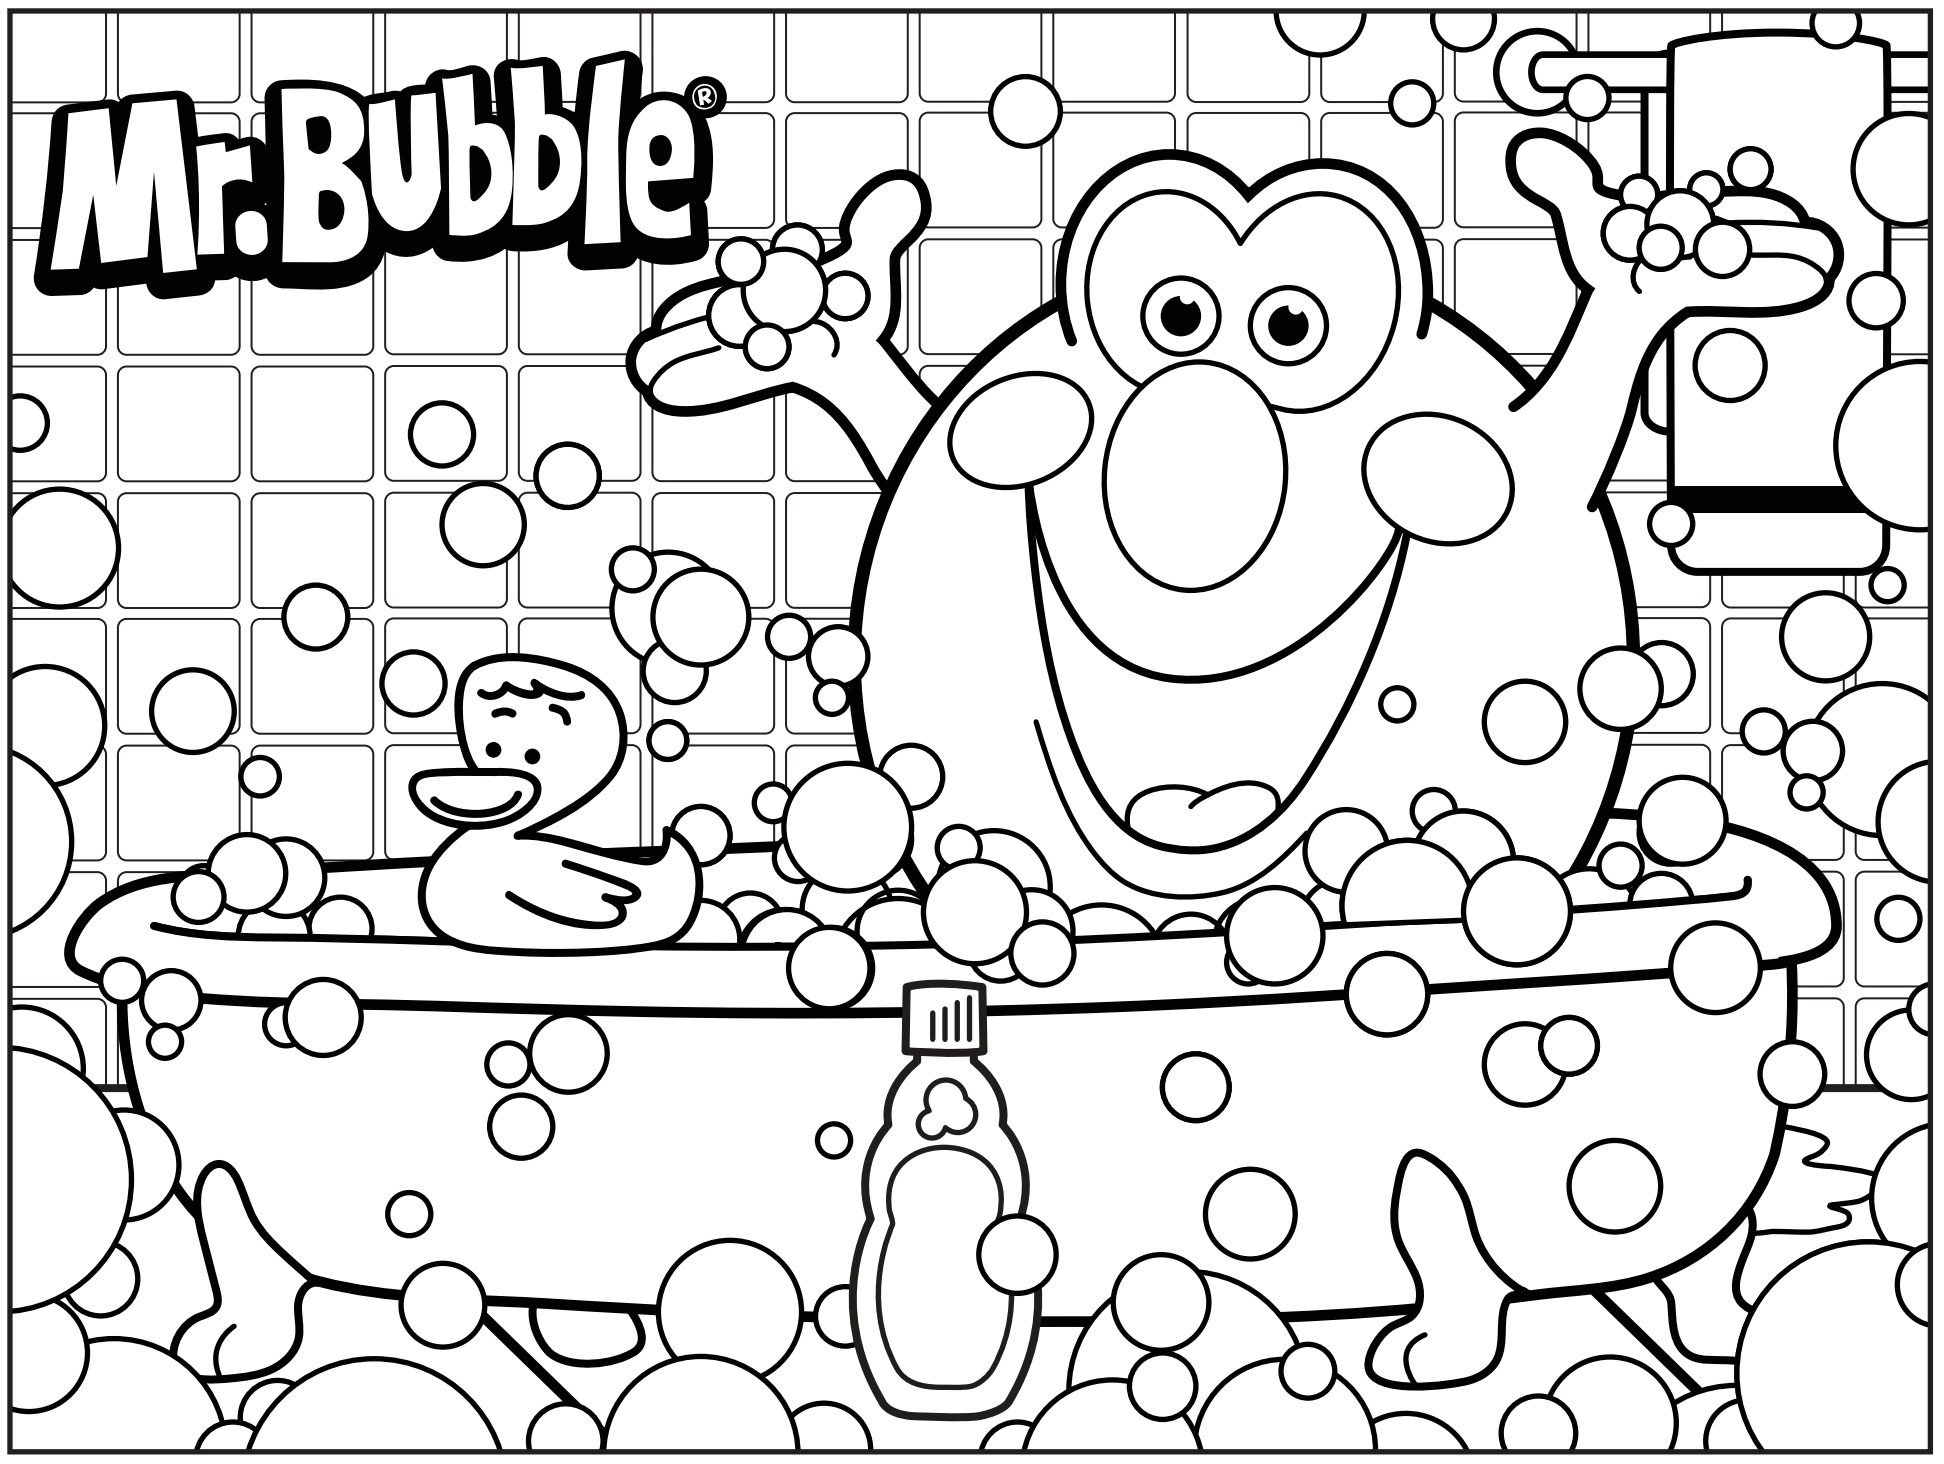 Bubble Math Sheet Printable Coloring Pages